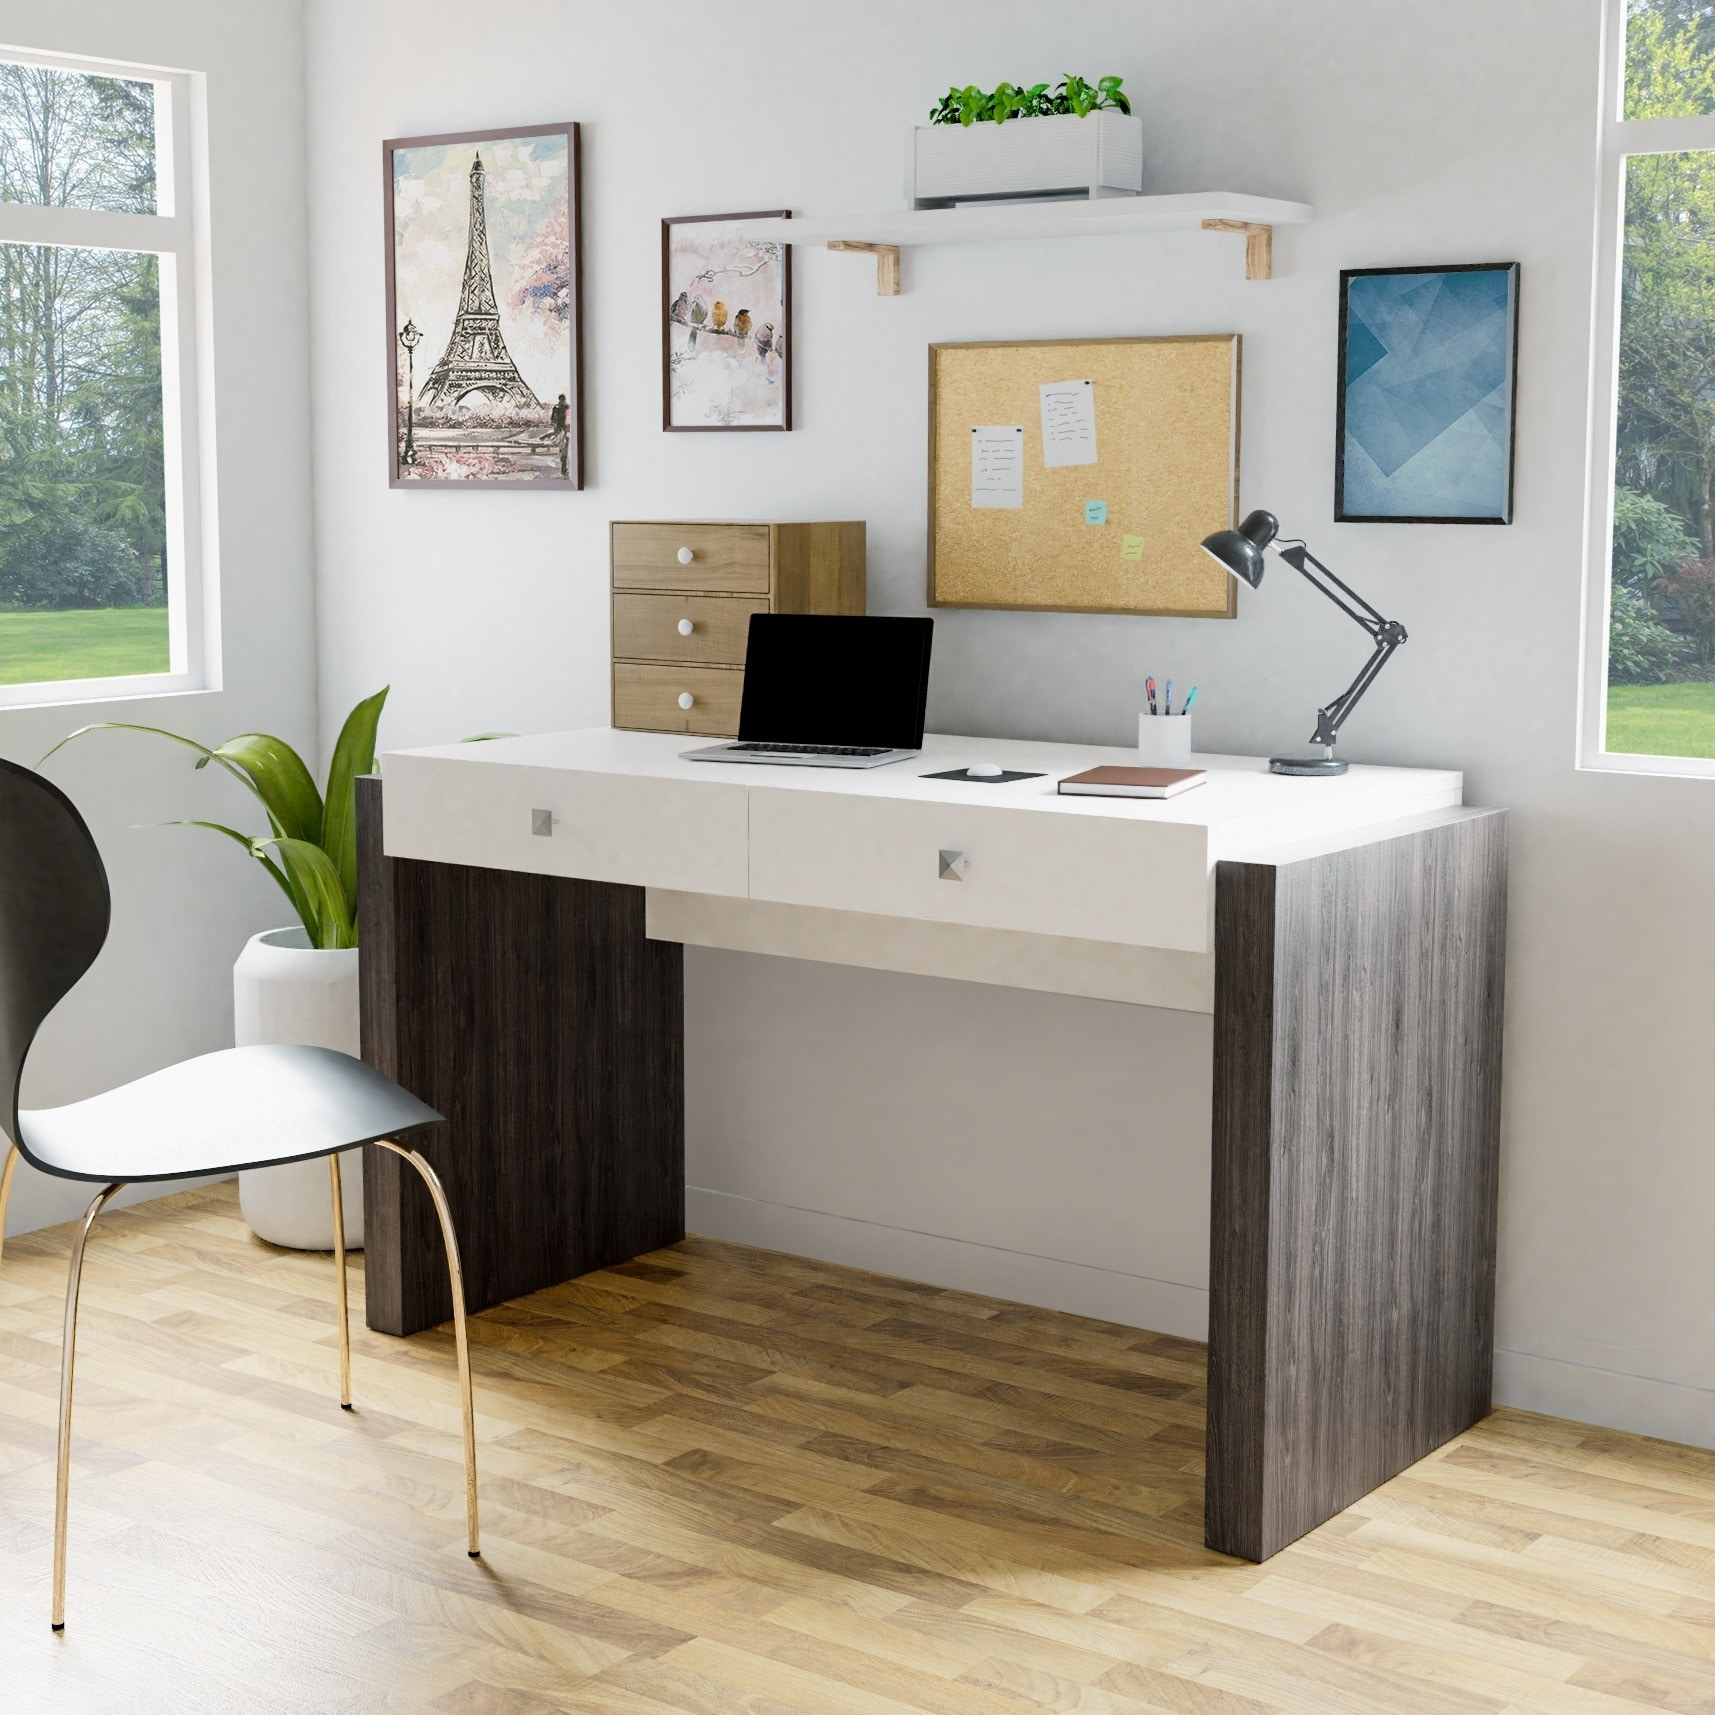 Furniture of america zilo modern contemporary glossy white 2 drawer home office desk